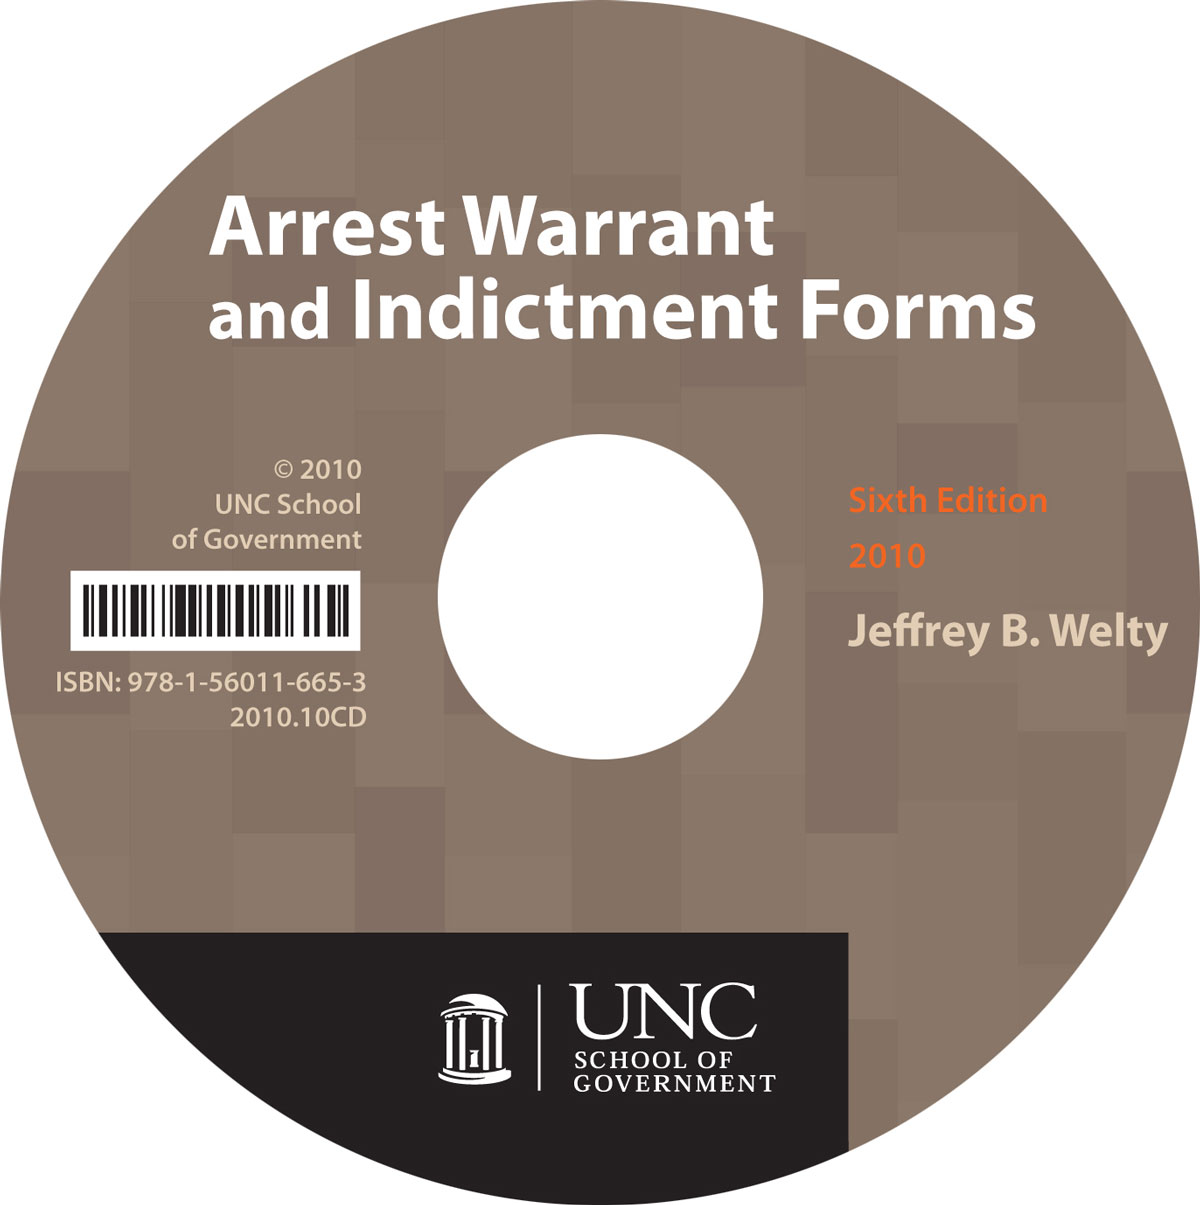 Cover image for Arrest Warrant and Indictment Forms, Sixth Edition, 2010: CD-ROM, Single-User